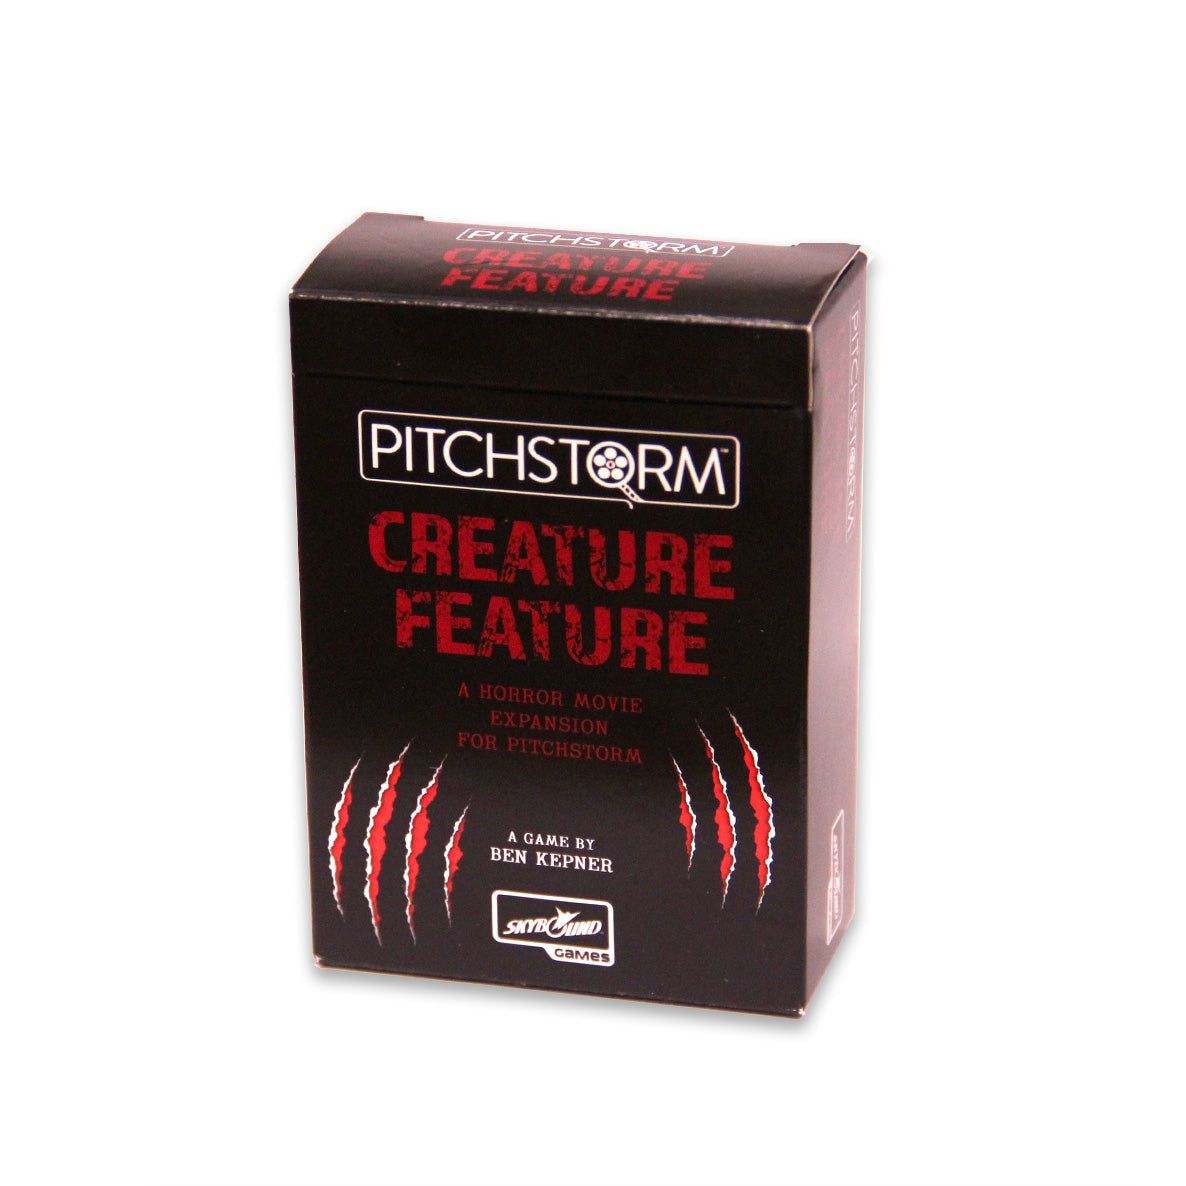 PITCHSTORM Creature Feature: A Horror Movie Expansion